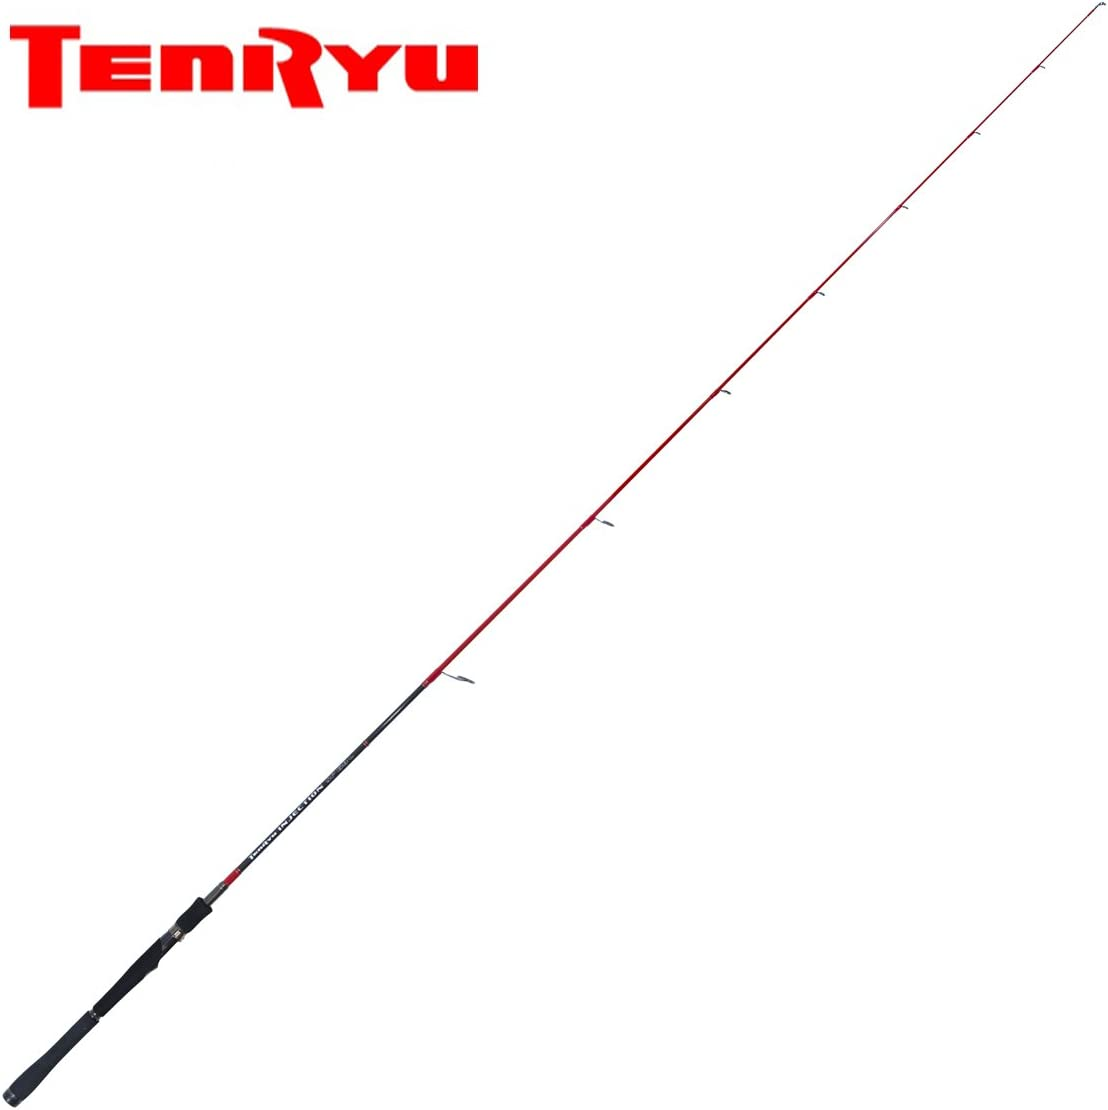 TENRYU CAÑA Spinning Injection SP 68 L - 124, 203, 1, 3.5-10 ...